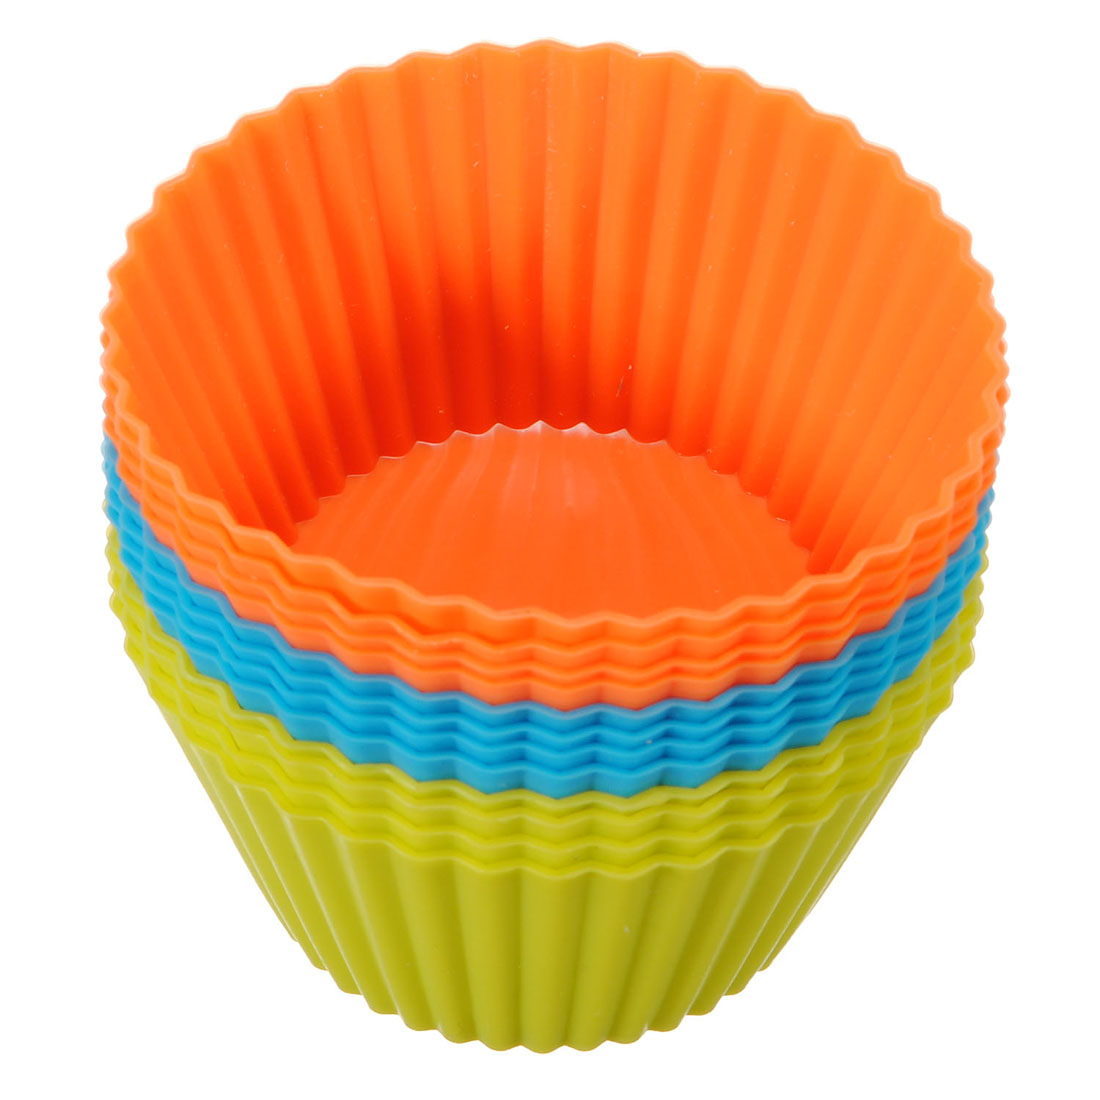 Keep Cups Wholesale Australia 12x Silicone Cake Muffin Chocolate Cupcake Cups Mold Us 3 65